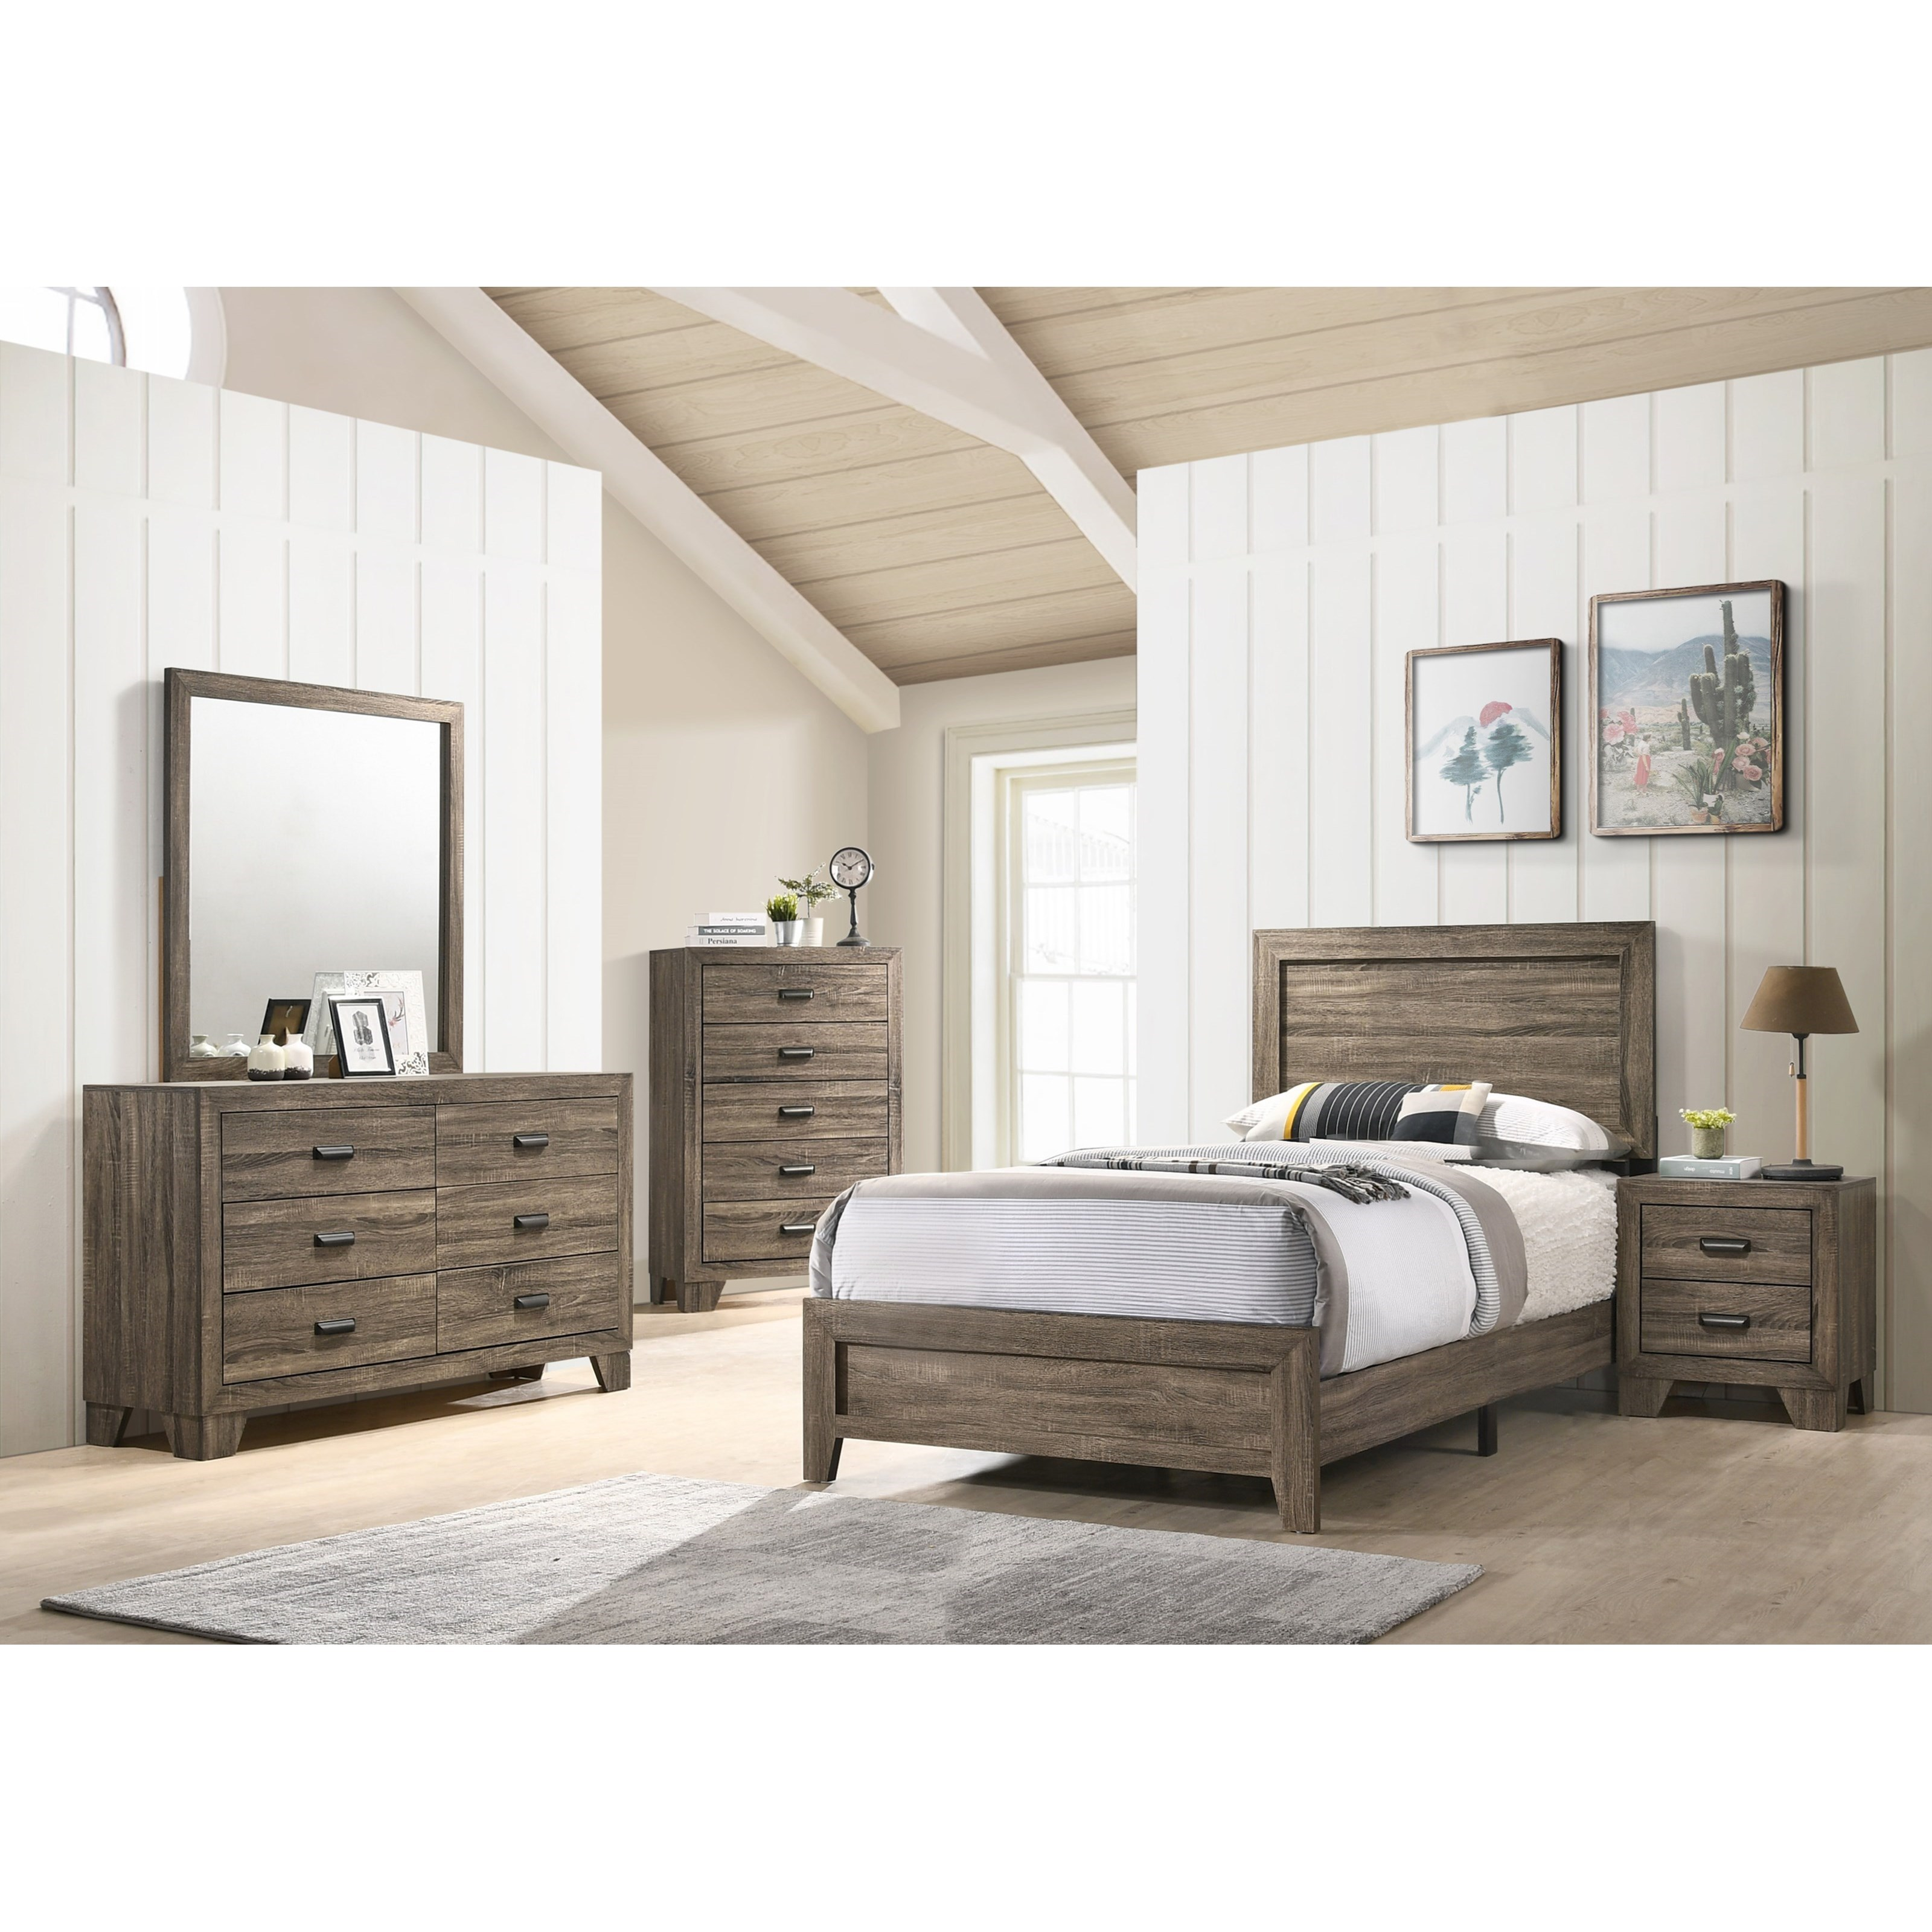 Millie Twin Bedroom Group by Crown Mark at Catalog Outlet